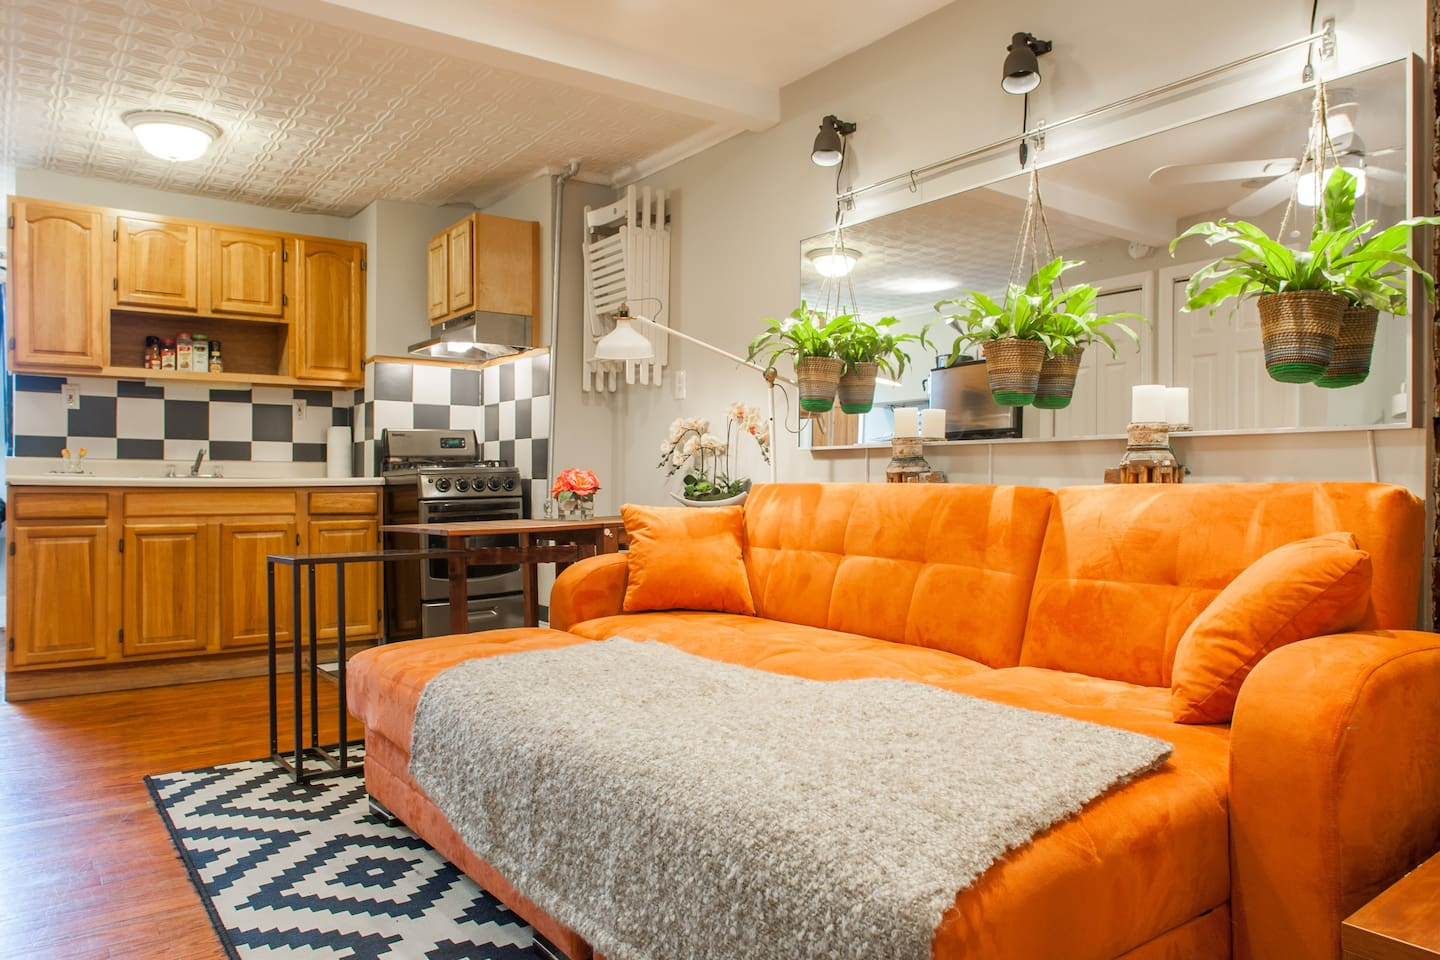 NYC style apartment can host larger groups in this tiny apartment at a great rate.